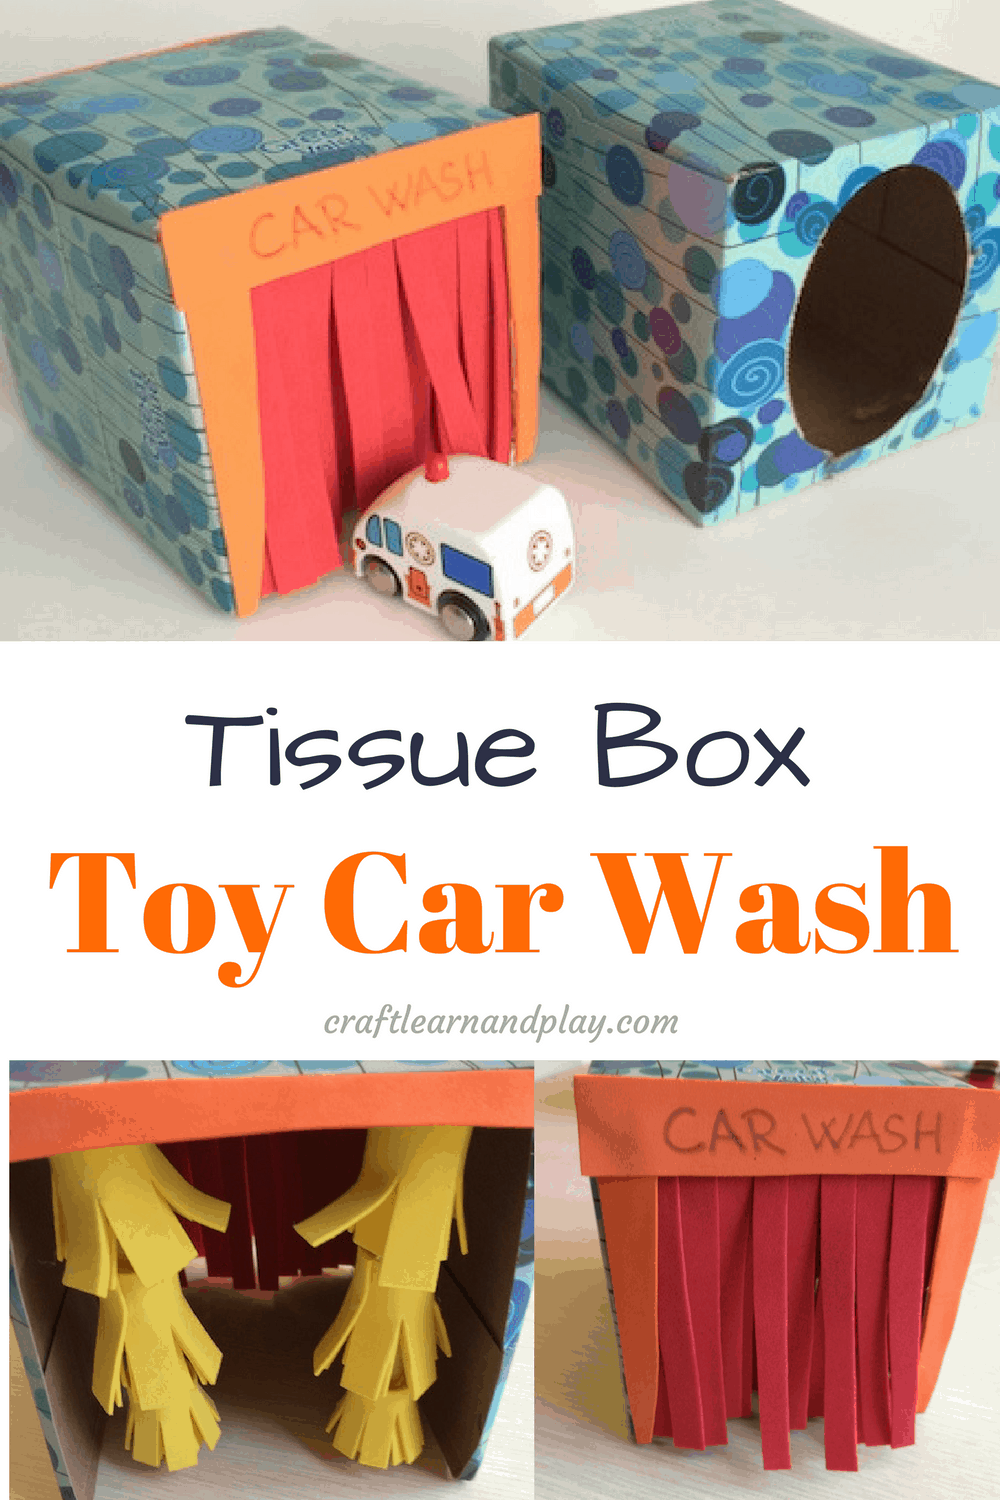 Tissue box toy car wash